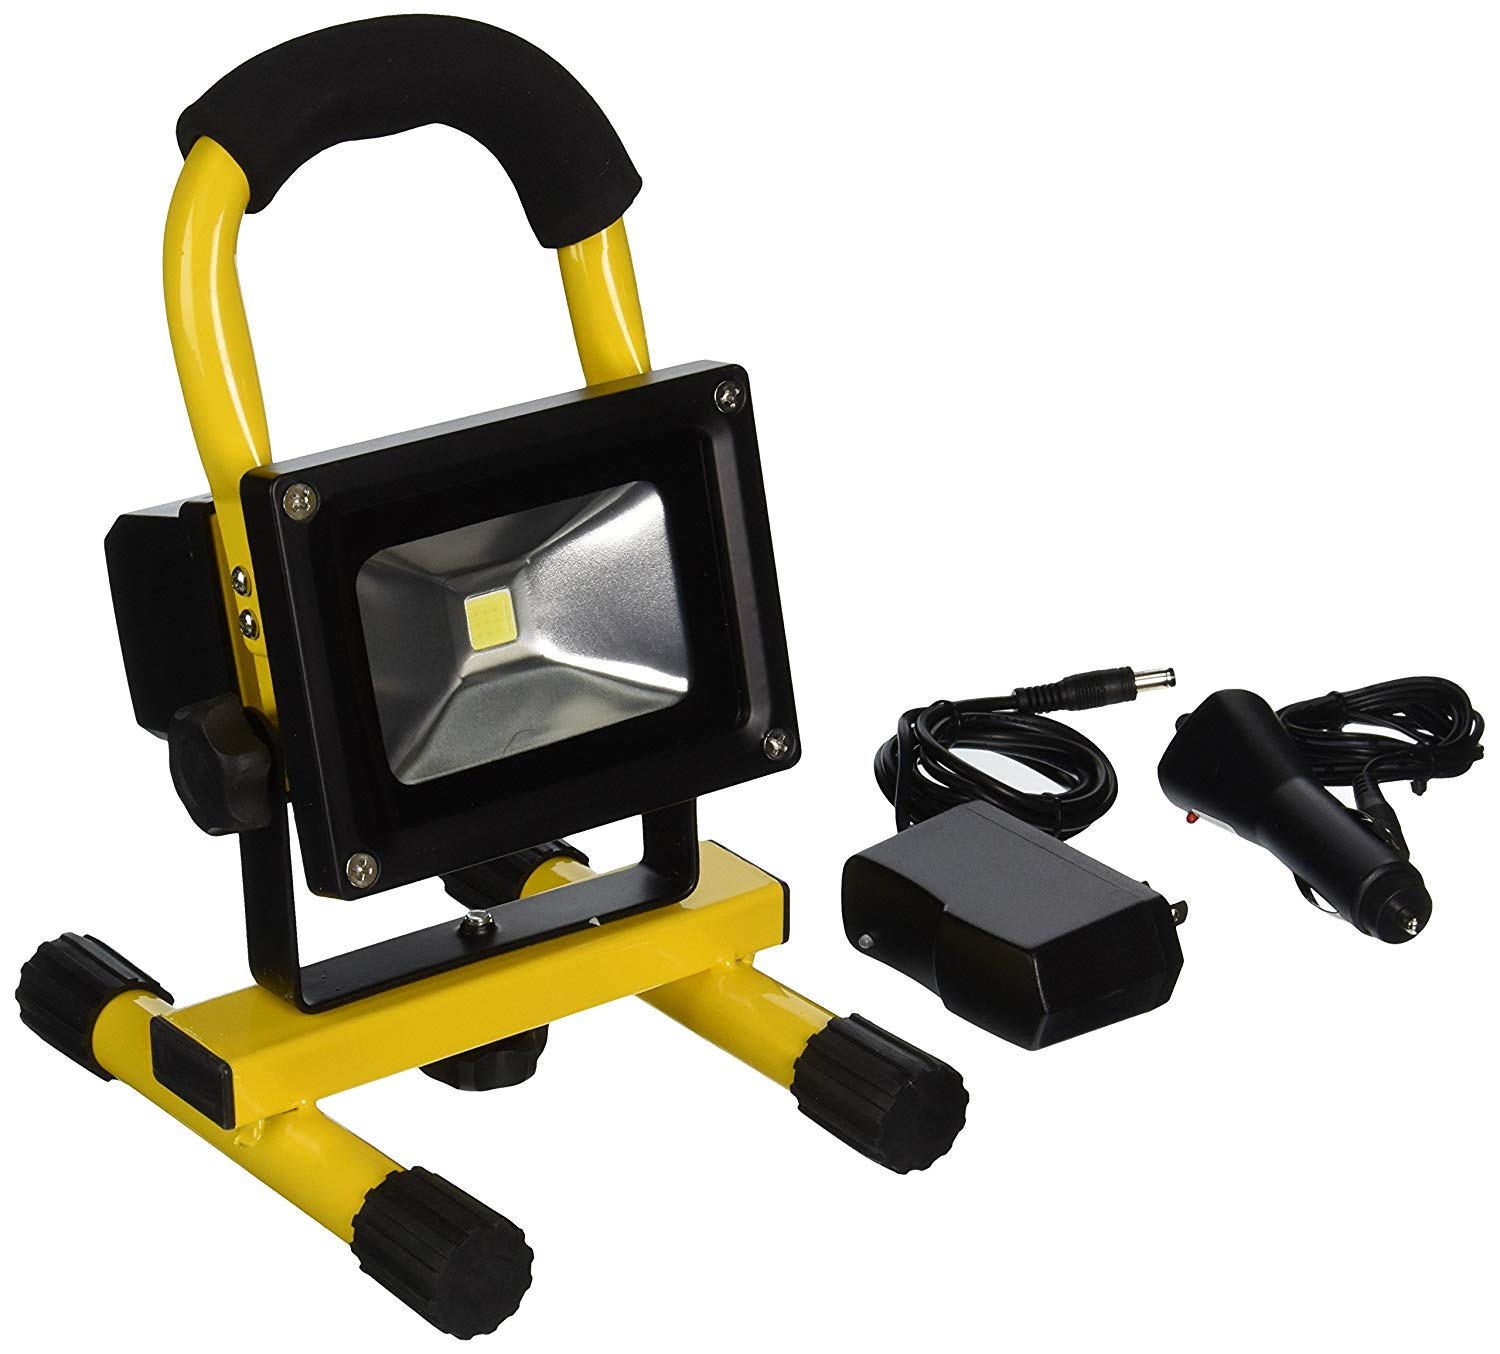 TruePower 30-3002 Portable 10W COB Type Super Bright LED Work Light Rechargeable Li-Ion Flood Light Lamp, Yellow